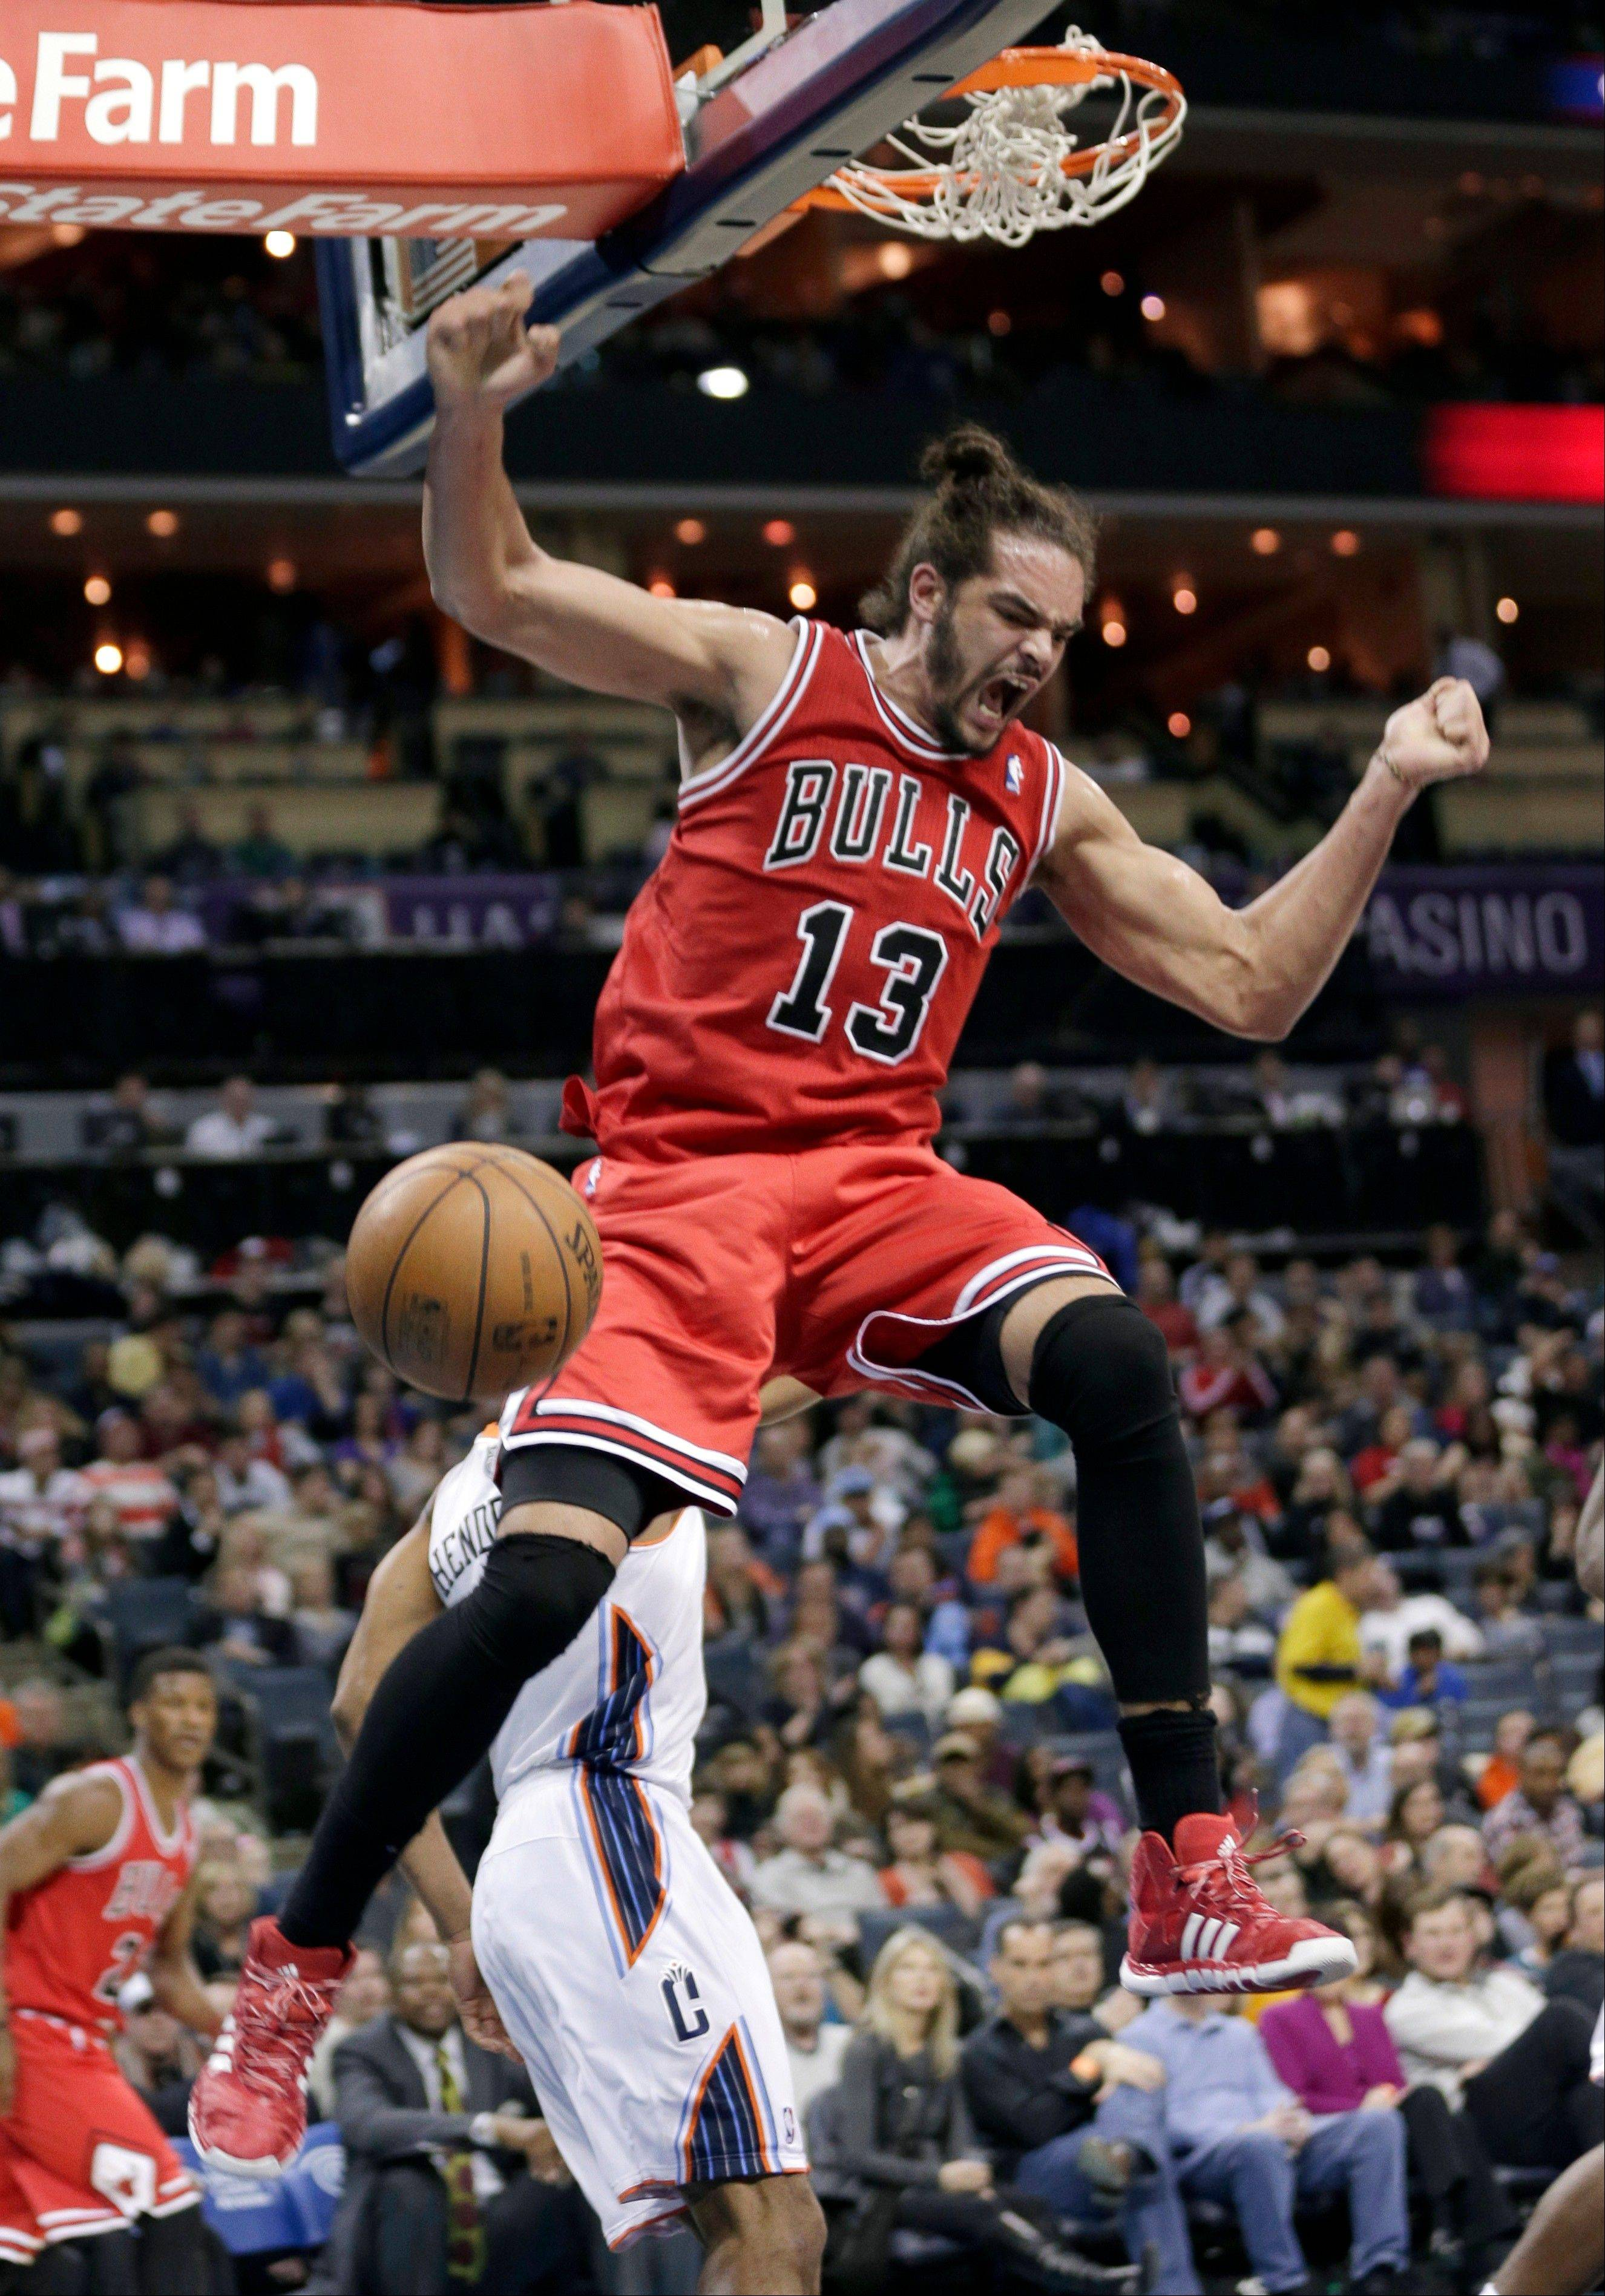 Bulls center Joakim Noah celebrates after a dunk against the Charlotte Bobcats during the second half of Saturday's game. The Bulls won 89-87.